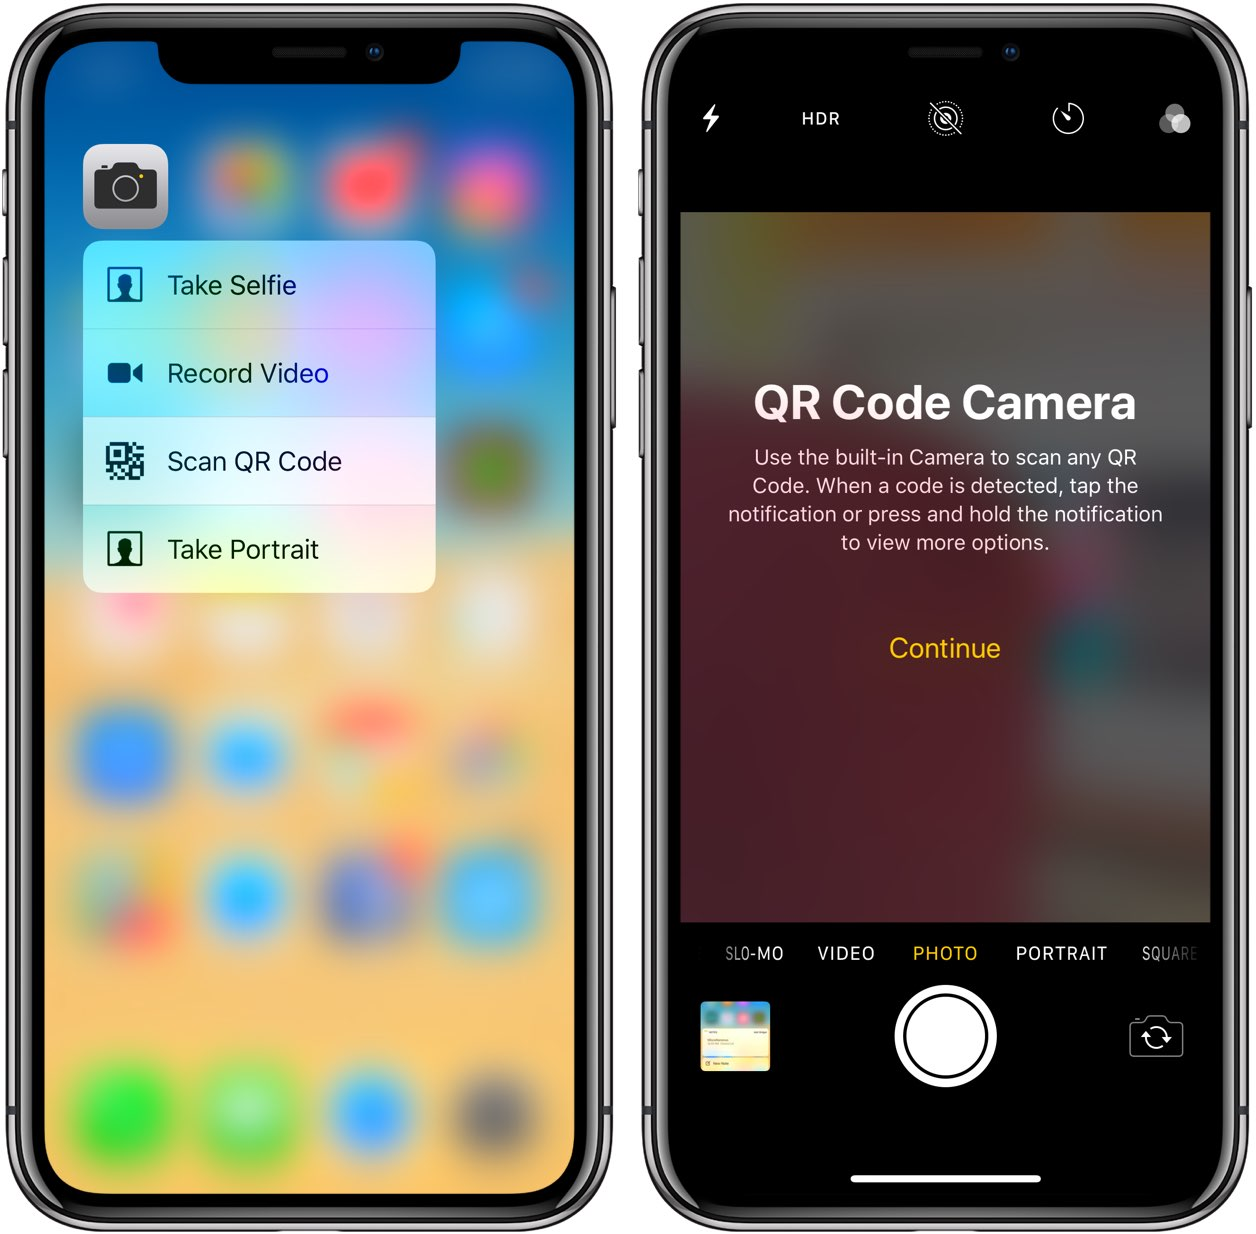 iOS 12 brings new 3D Touch shortcuts, like QR code and